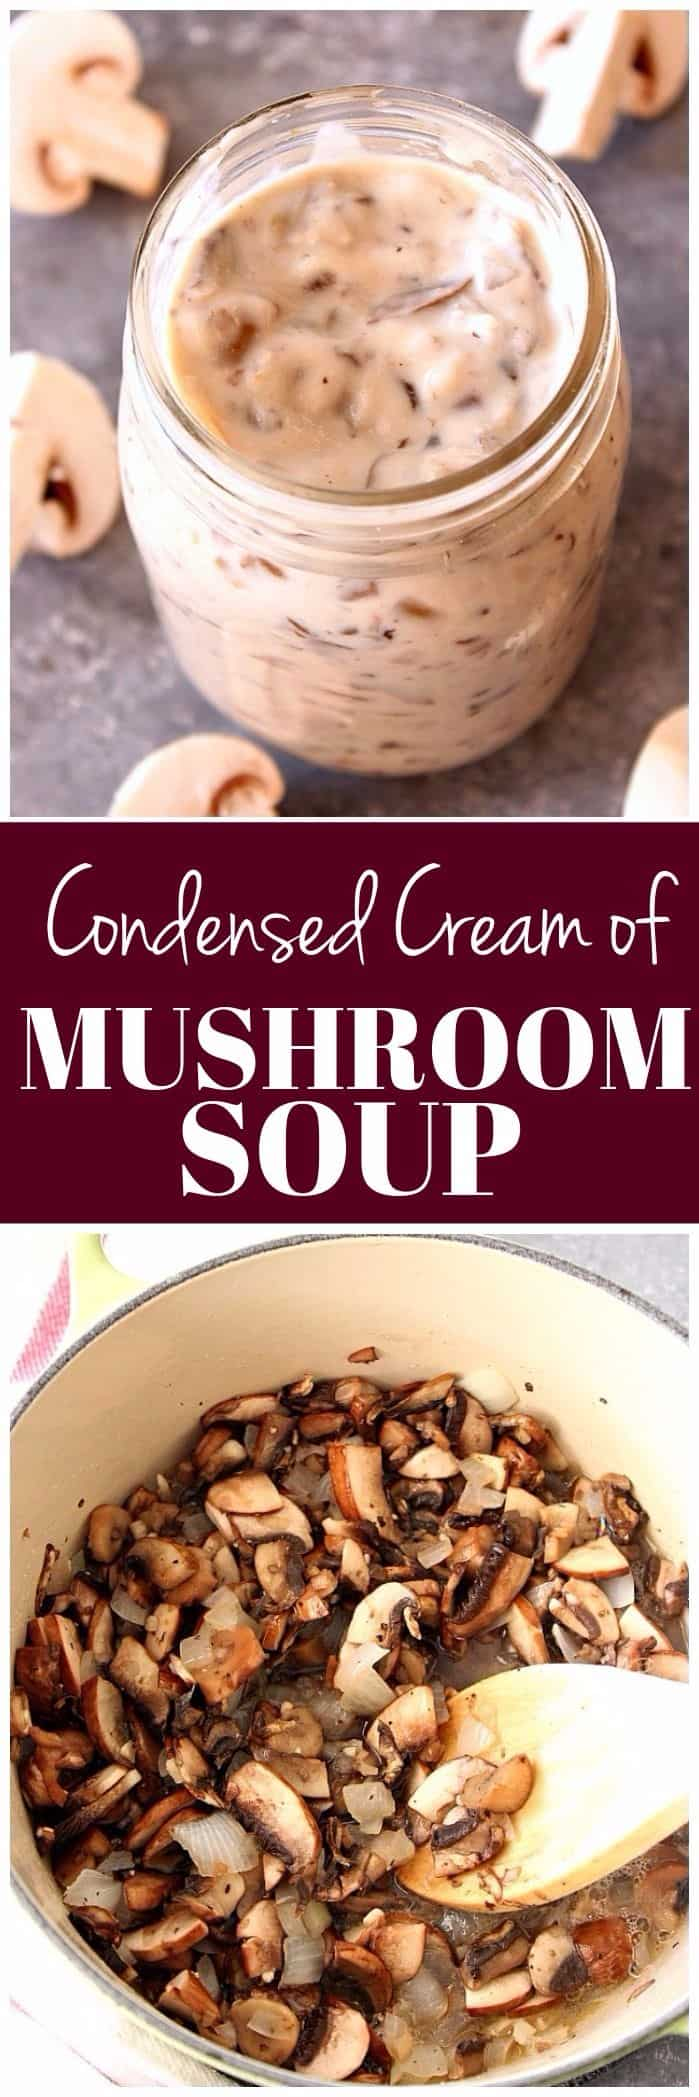 condensed cream of mushroom soup recipe long1 Homemade Condensed Cream of Mushroom Soup Recipe